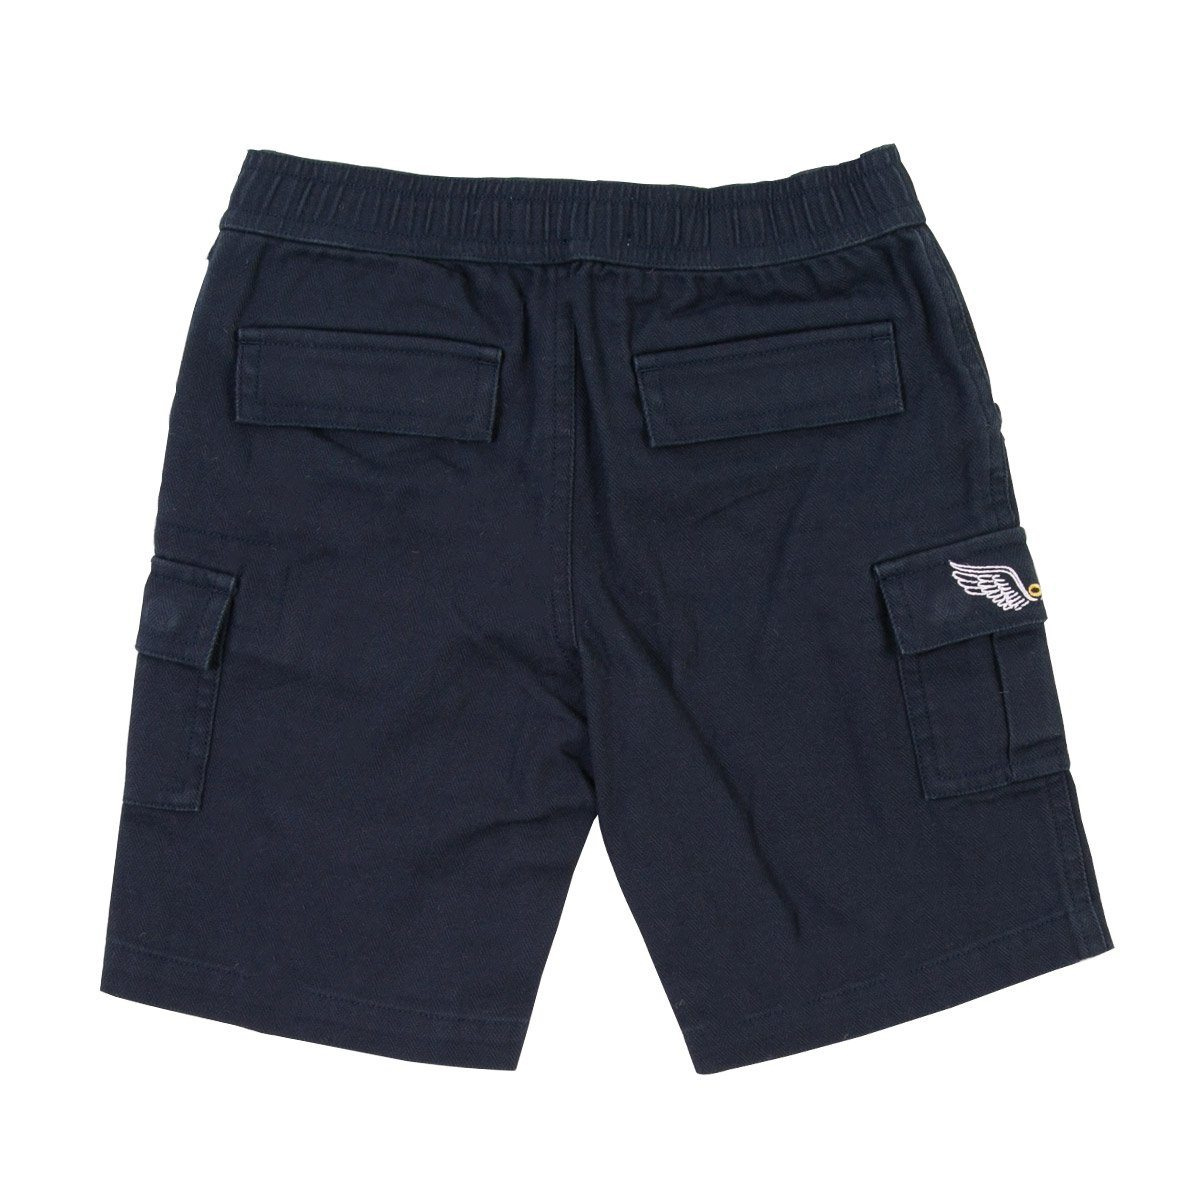 Angels Luxury Kidswear, Cargo Shorts For Boys, Navy Blue